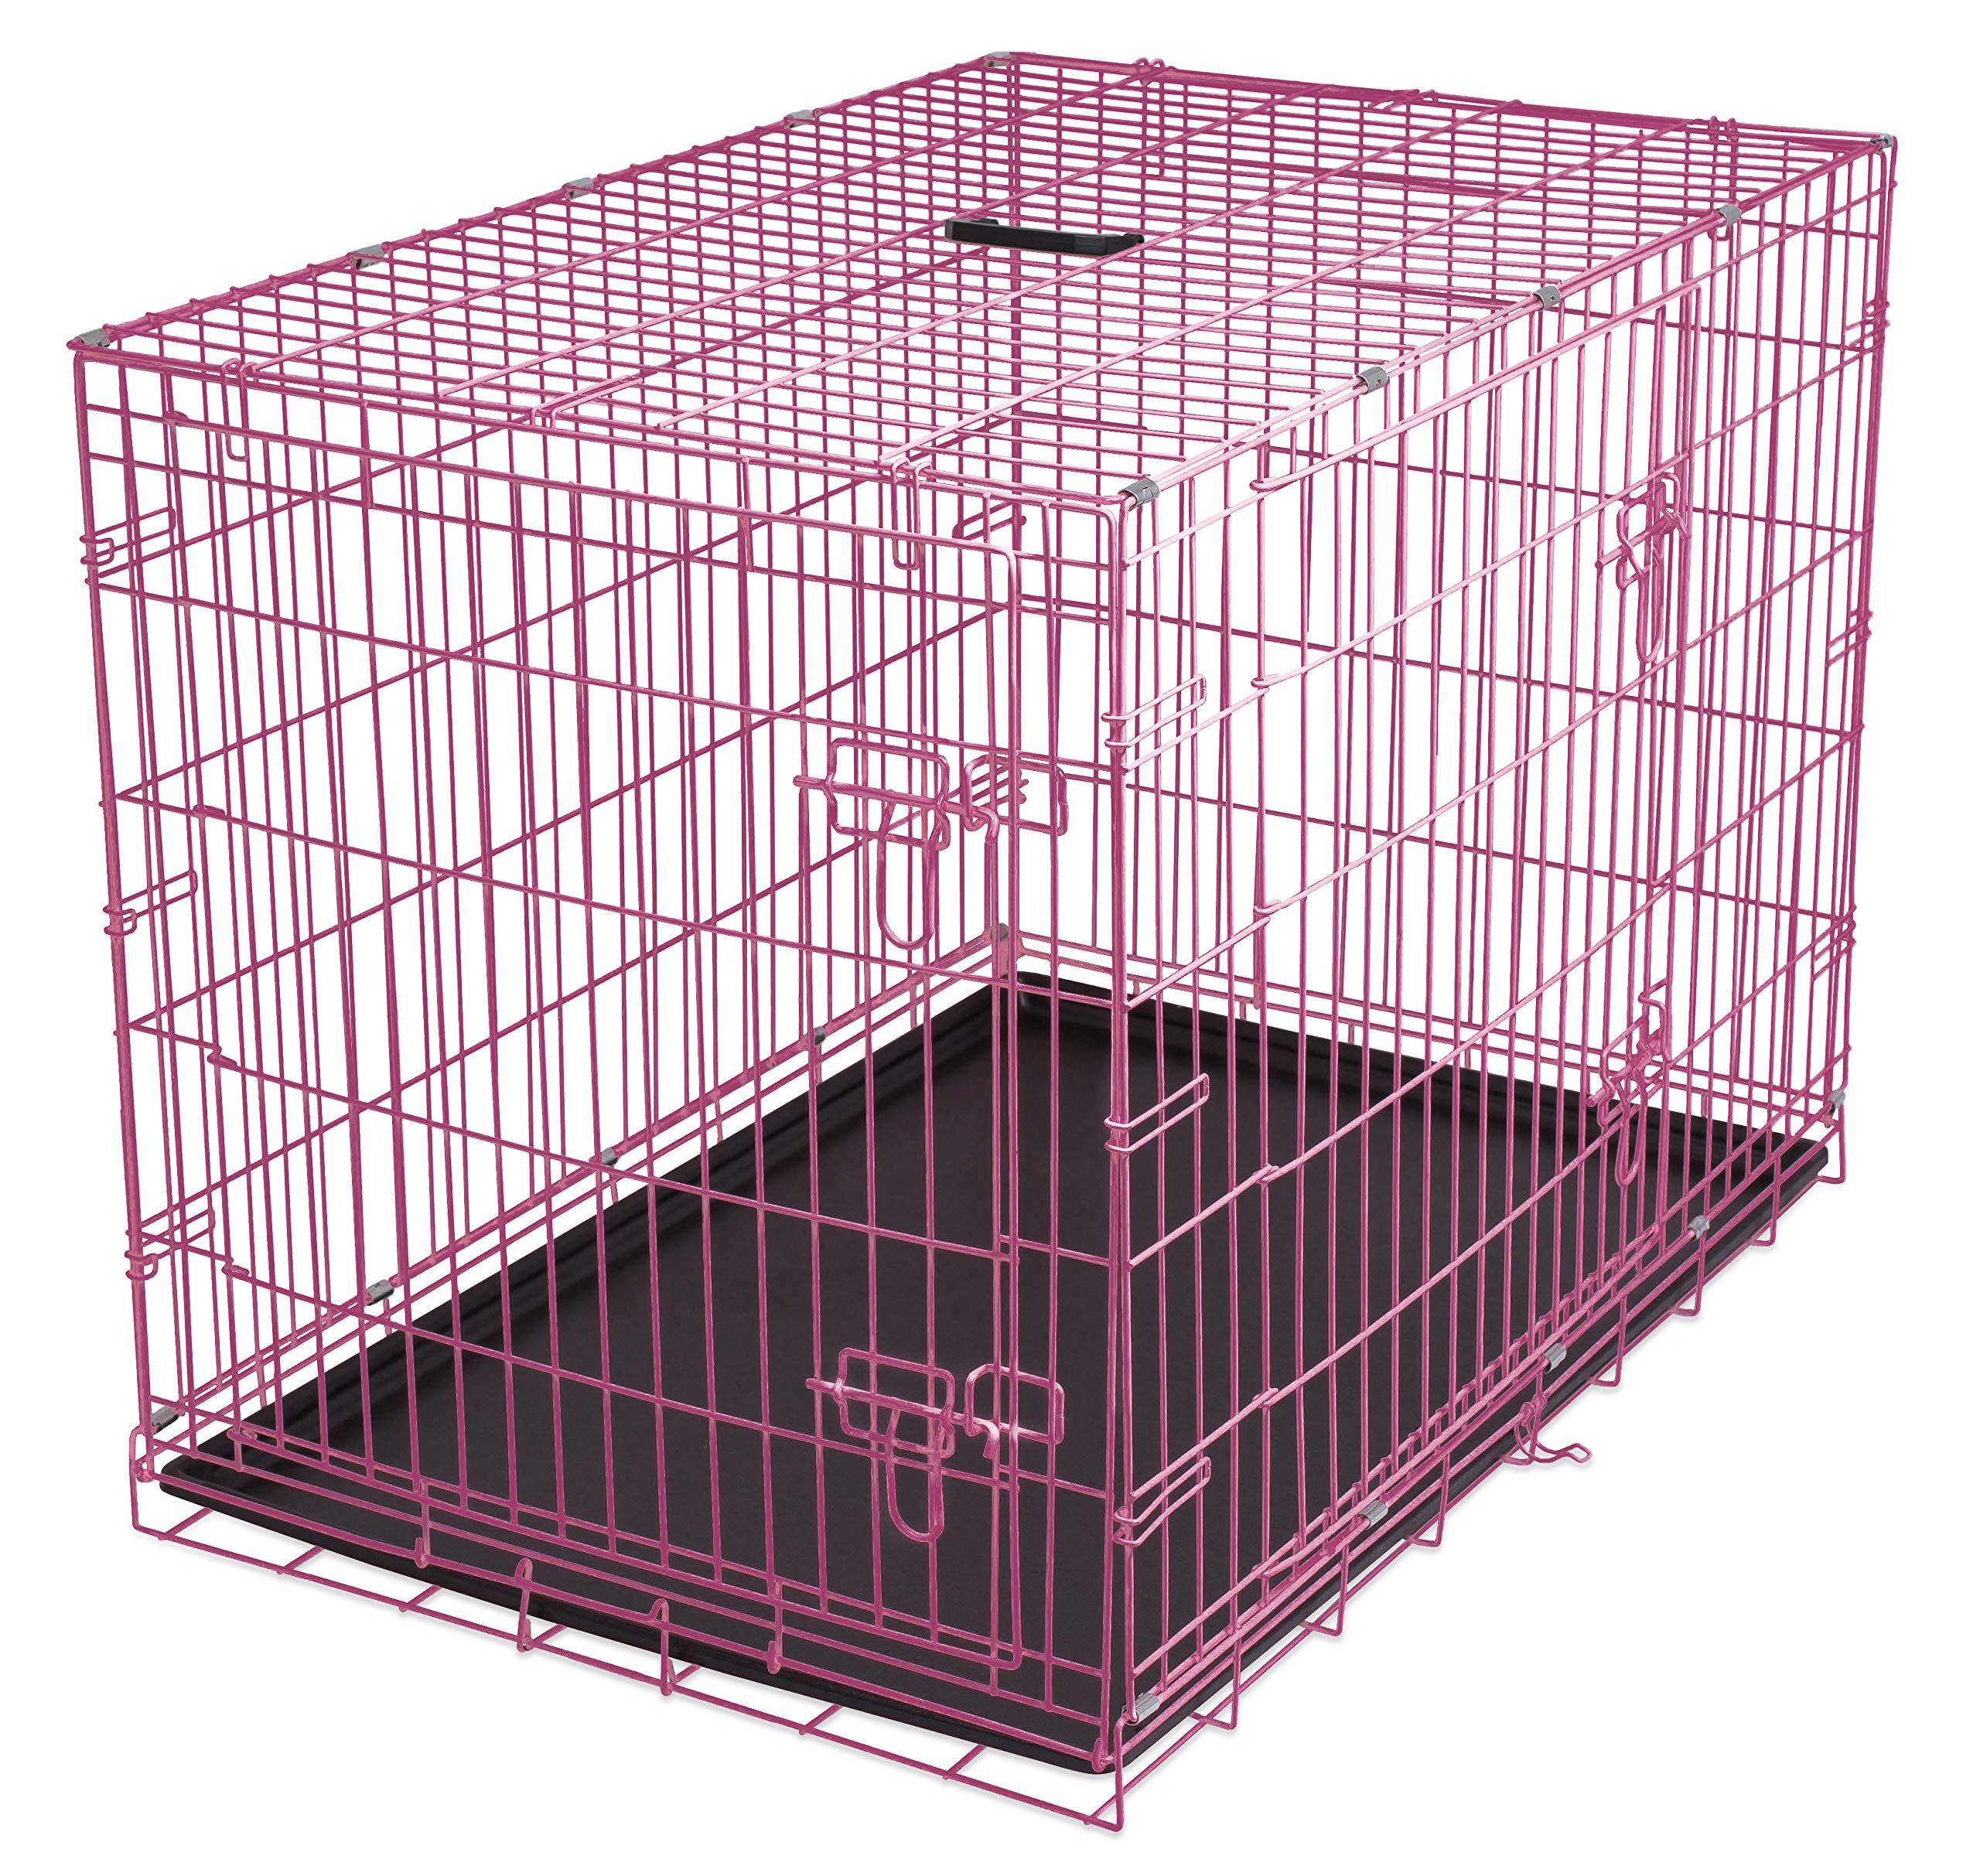 Internet's Best Double Door Steel Crates Collapsible and Foldable Wire Dog Kennel, 36 Inch (Medium), Pink